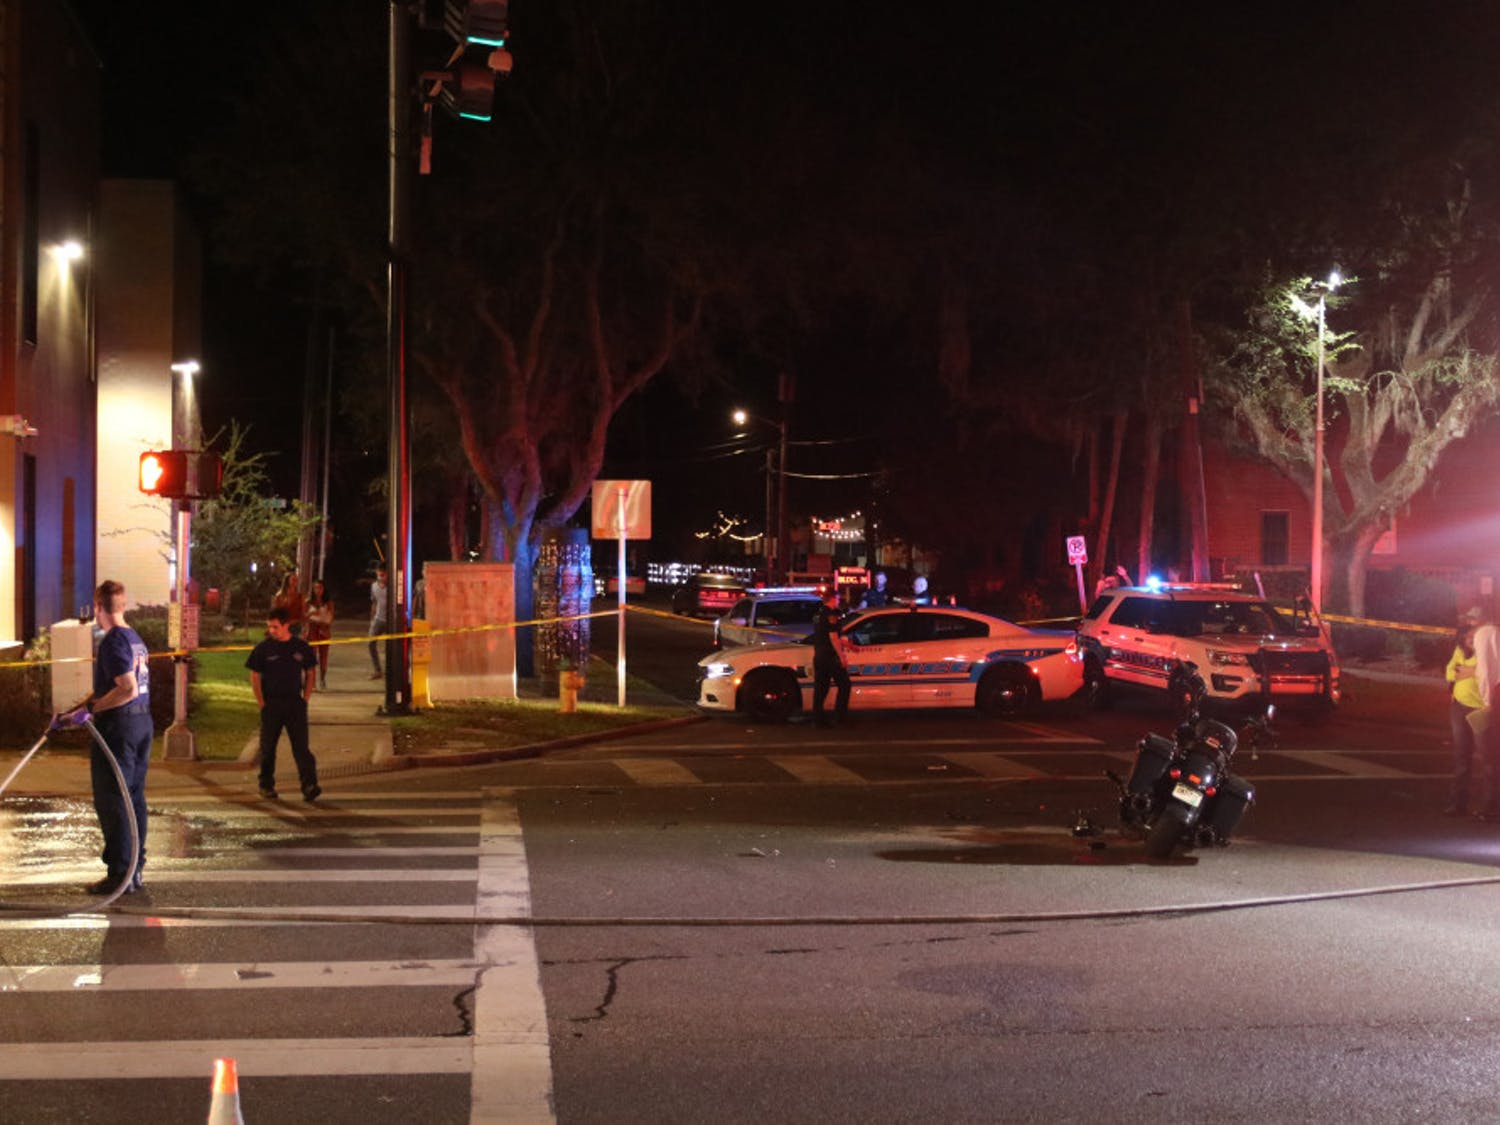 Motorcyclist involved in Saturday night crash near UF in 'serious condition,' GPD says. (Zachariah Chou / Alligator Staff)